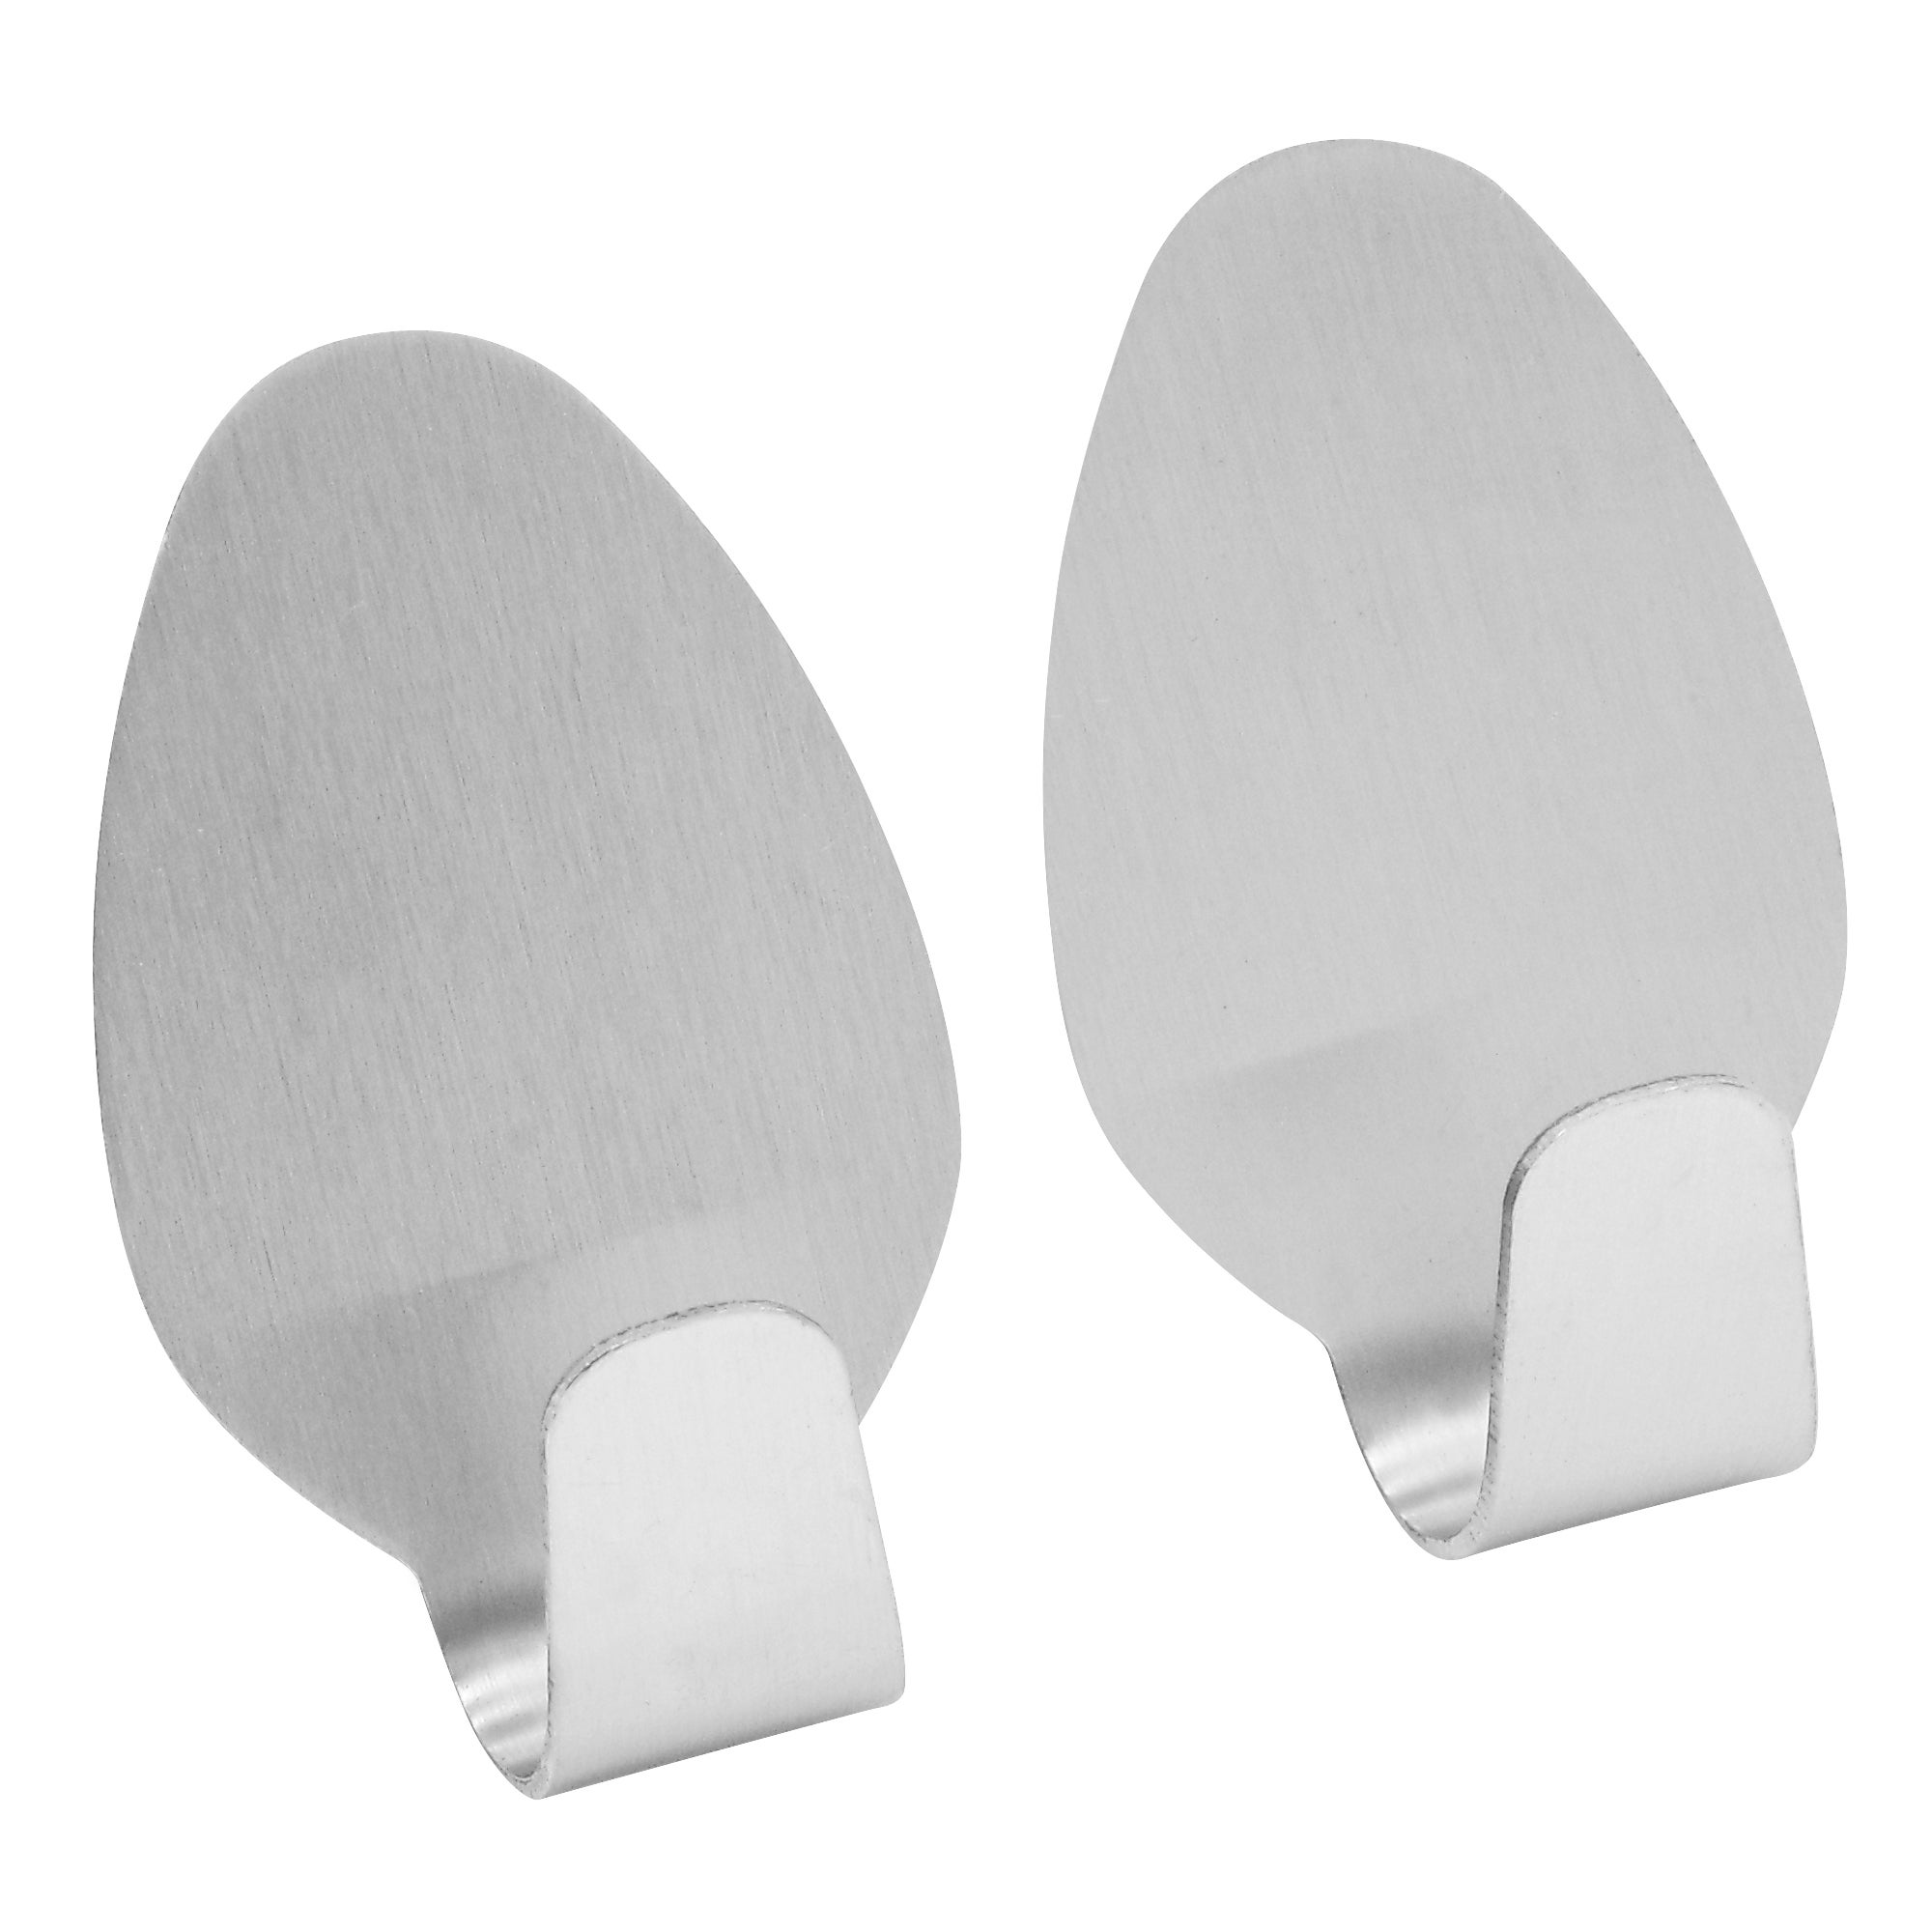 Stainless Steel Pack of 2 Self Adhesive Storage Hooks